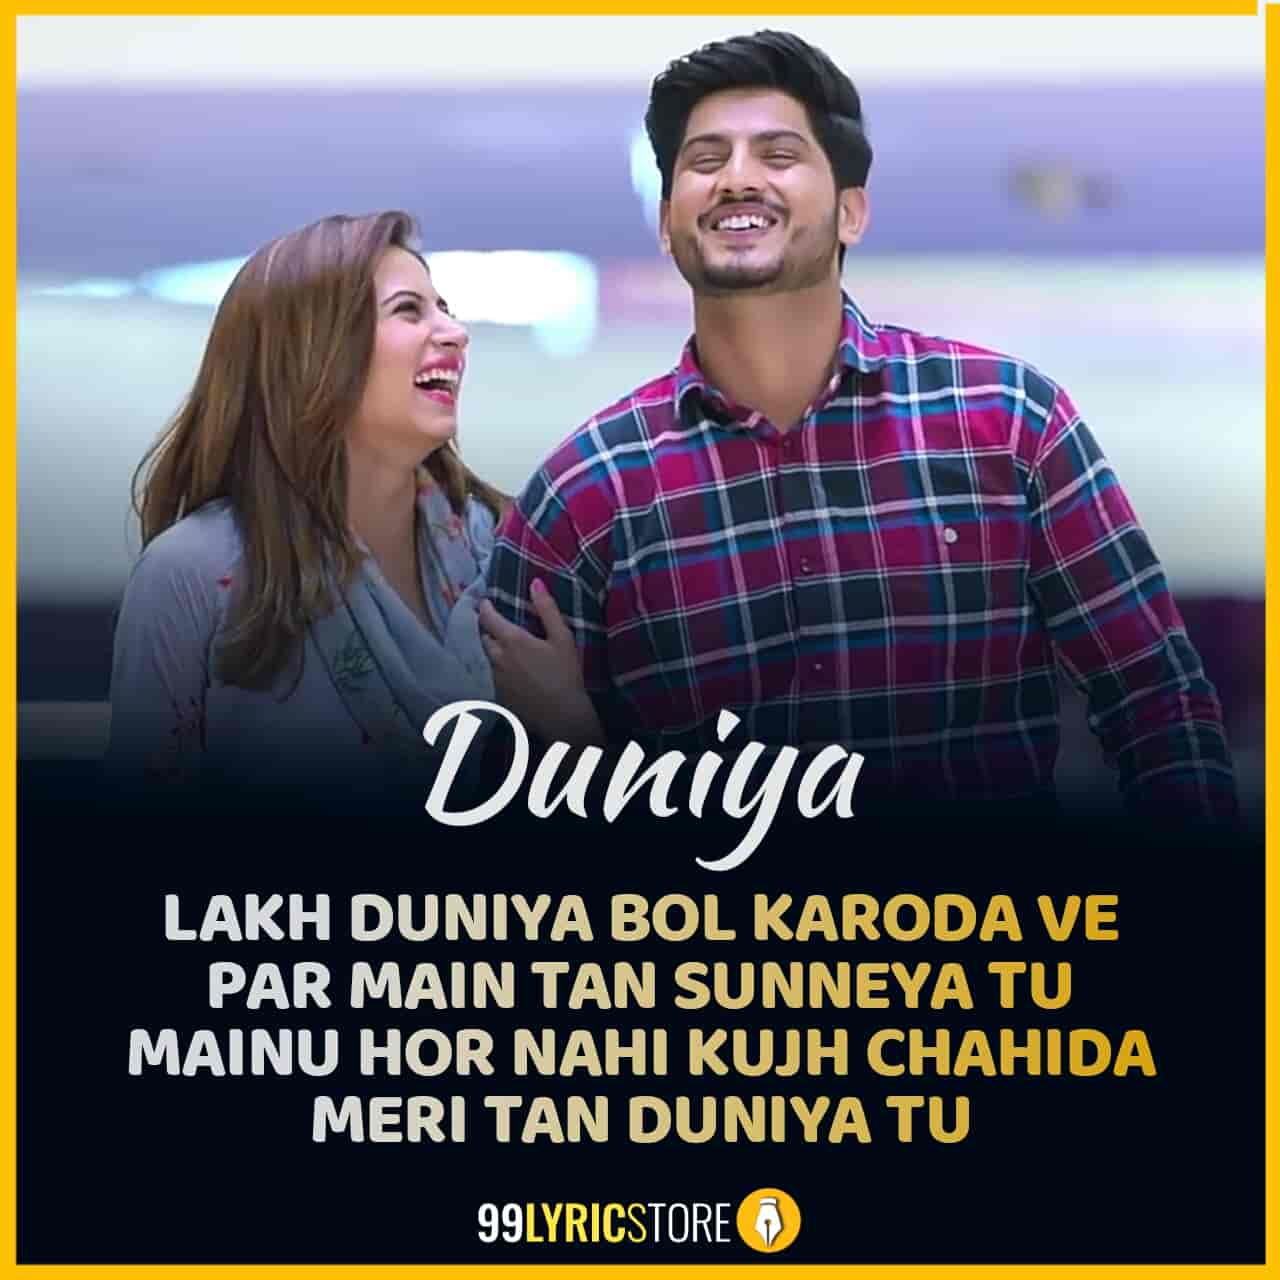 Duniya Punjabi Song Lyrics song sung by Gurnam Bhullar